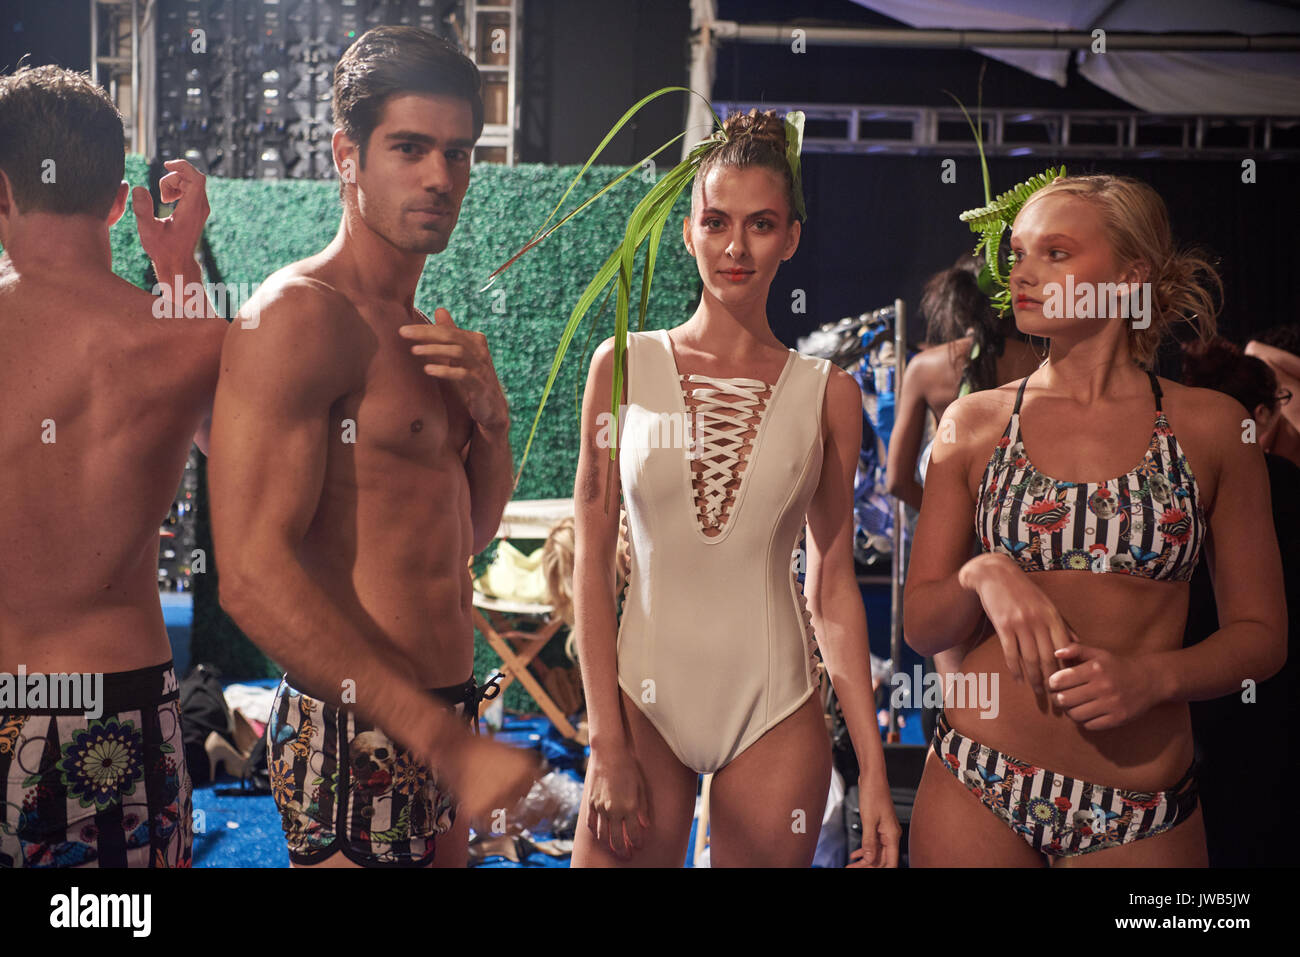 Miami, South Beach, USA. July 2017. Images from Miami Swim Week an annual event showcasing swimsuit designers from across the world - Stock Image